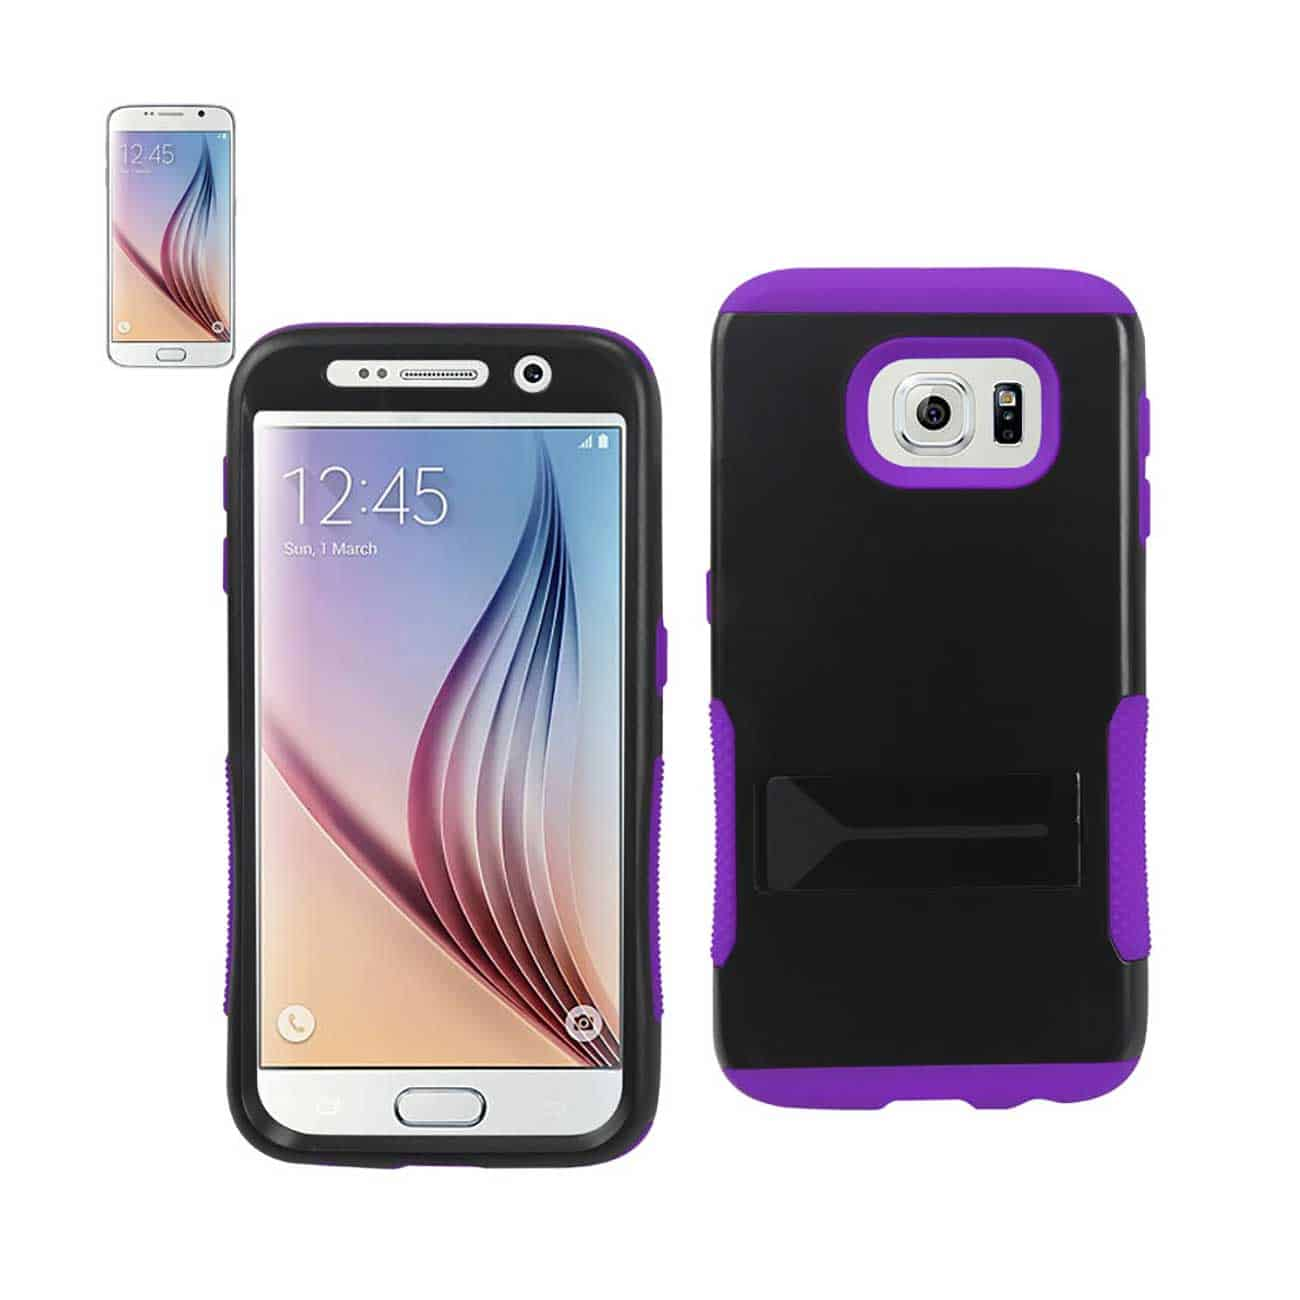 SAMSUNG GALAXY S6 HYBRID HEAVY DUTY GRIP CASE WITH LOWER KICKSTAND IN PURPLE BLACK